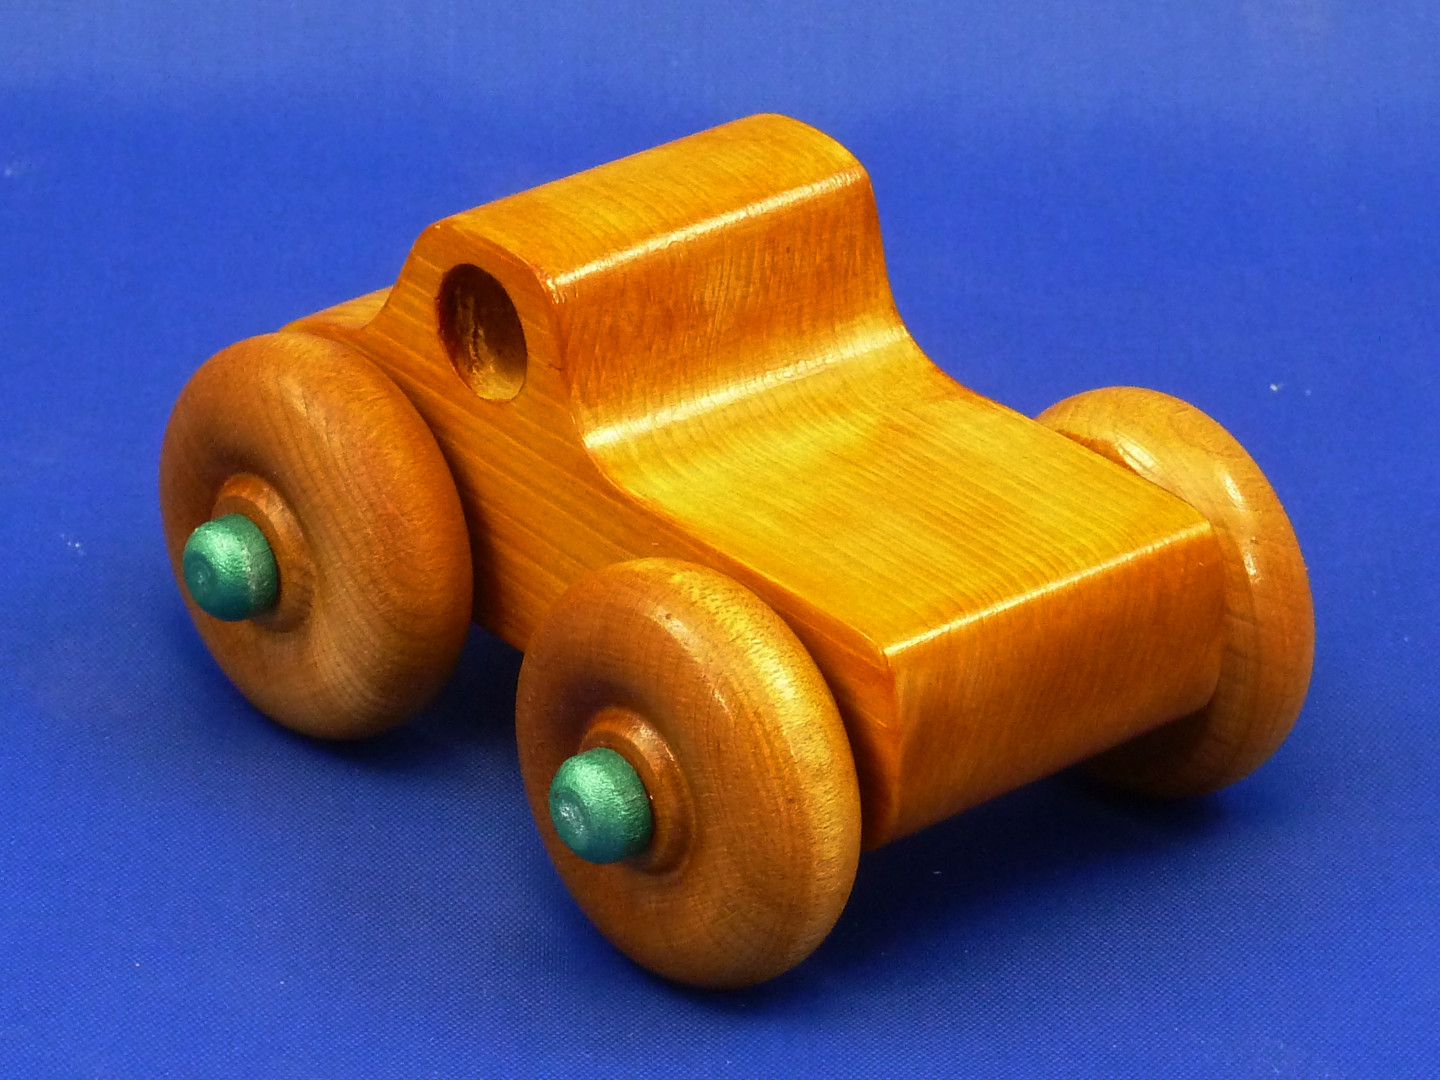 20170104-181507 - Monster Truck - Wooden Toy Truck - Toy Truck - Wooden Truck - Play Pal - Pickup - Handmade - Handcrafted - Wood Truck - Wood Toy.jpg